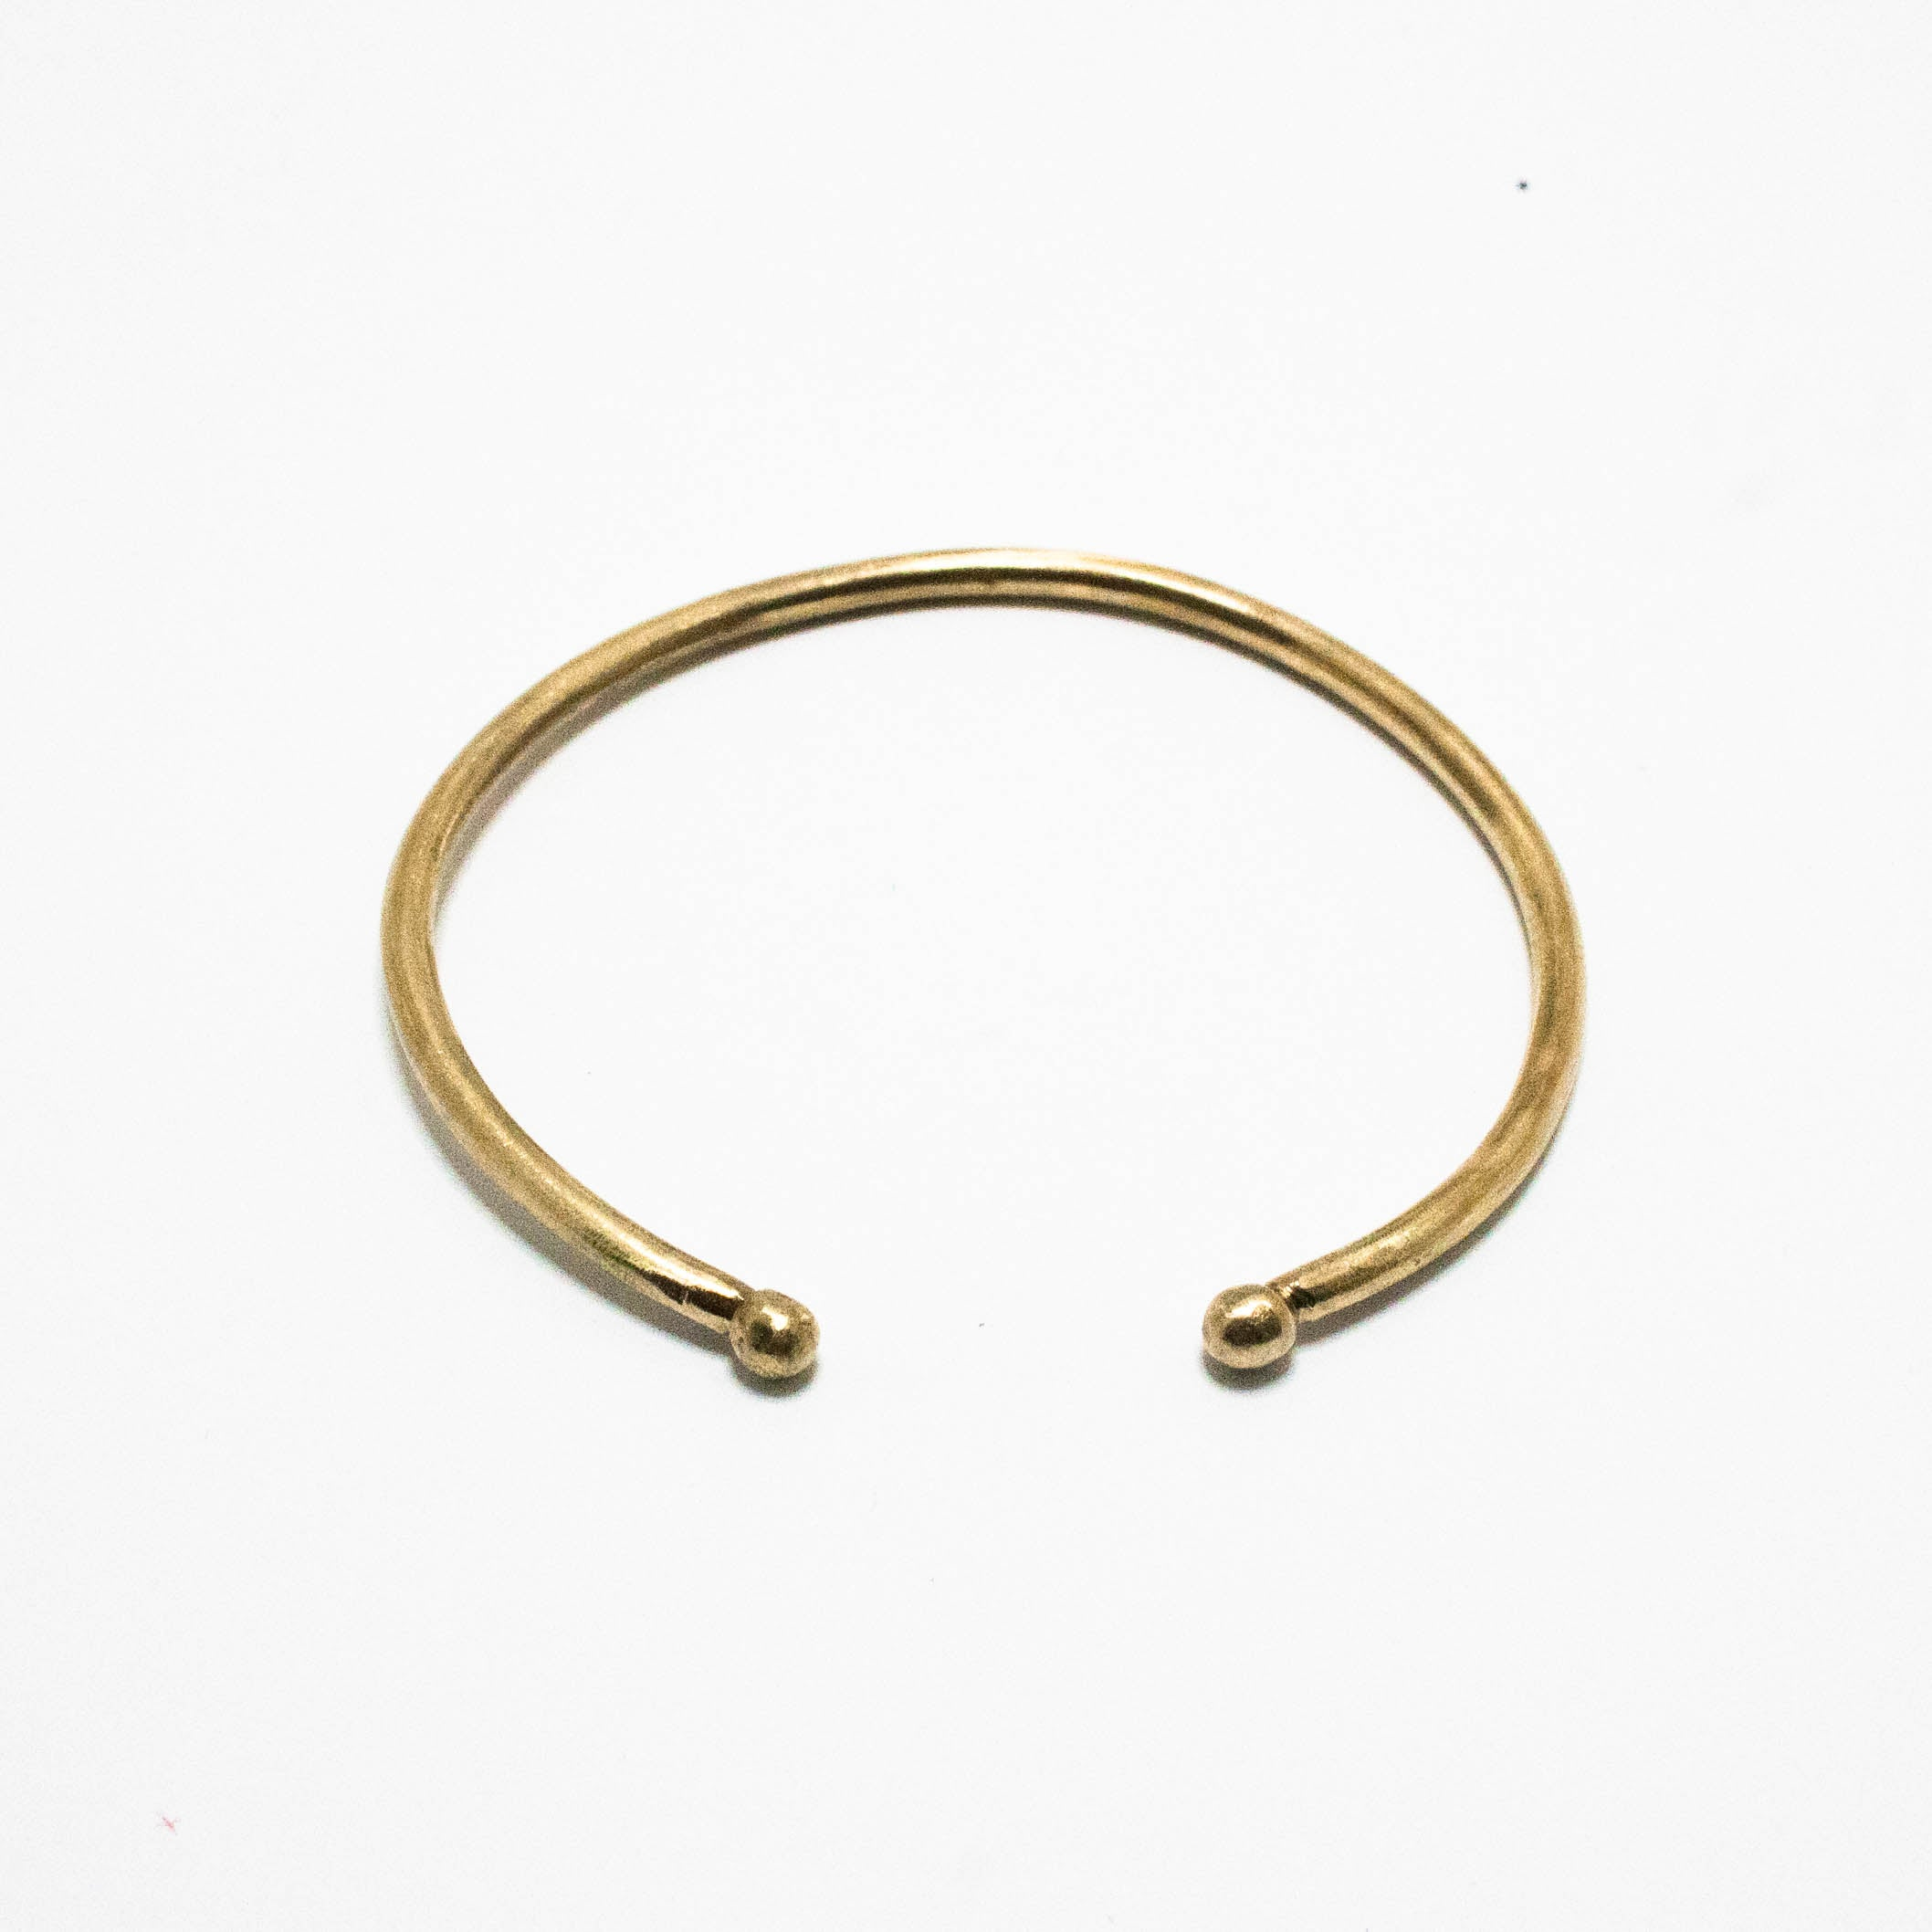 Brass cuff with balled ends